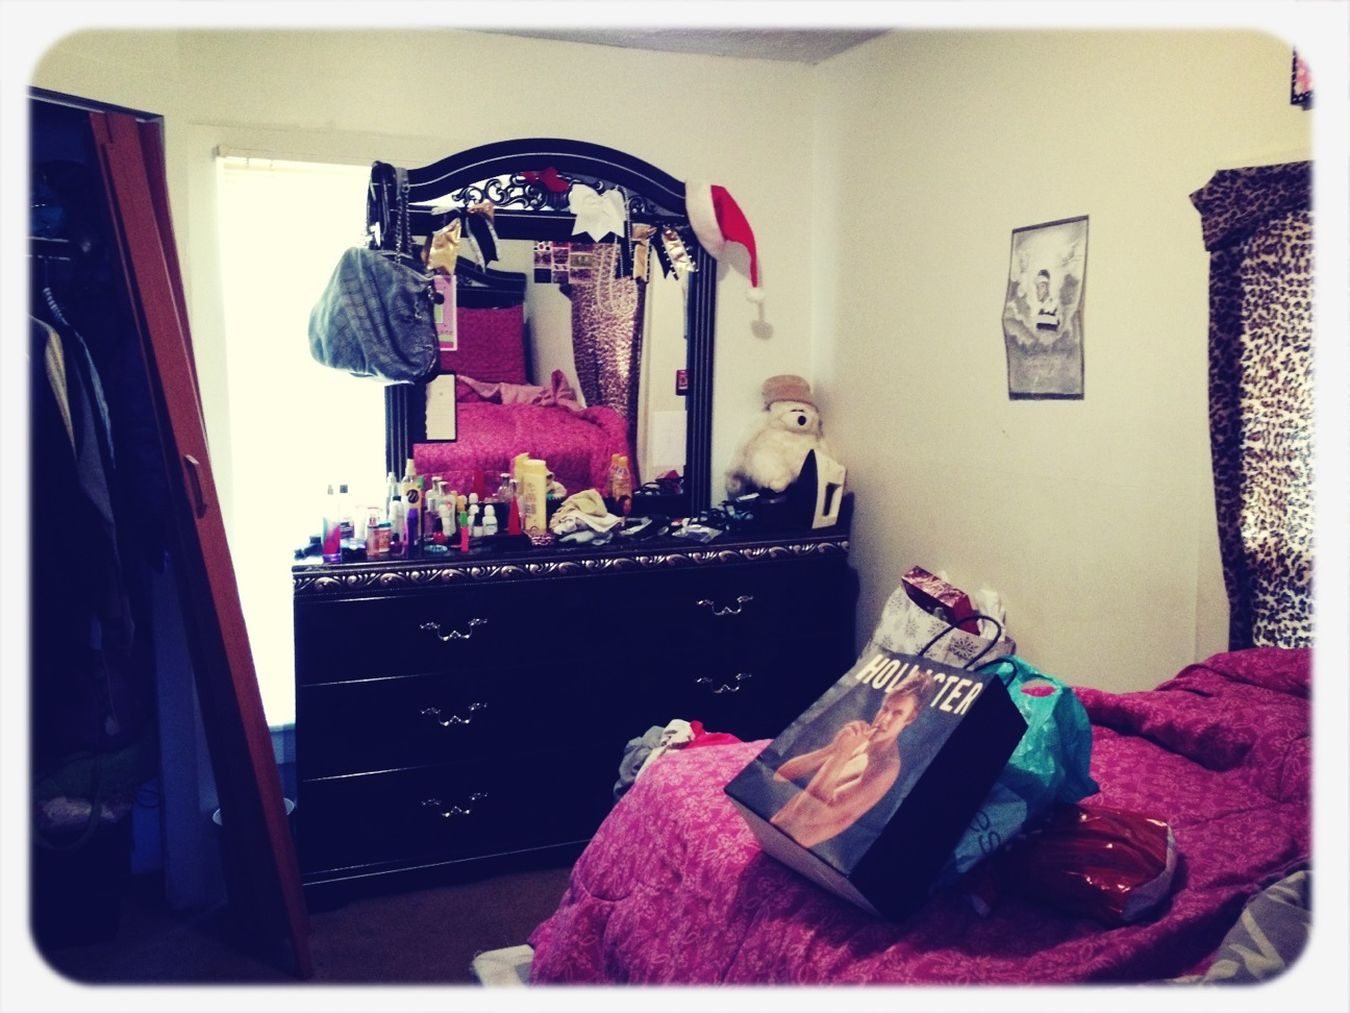 Cleaned My Room